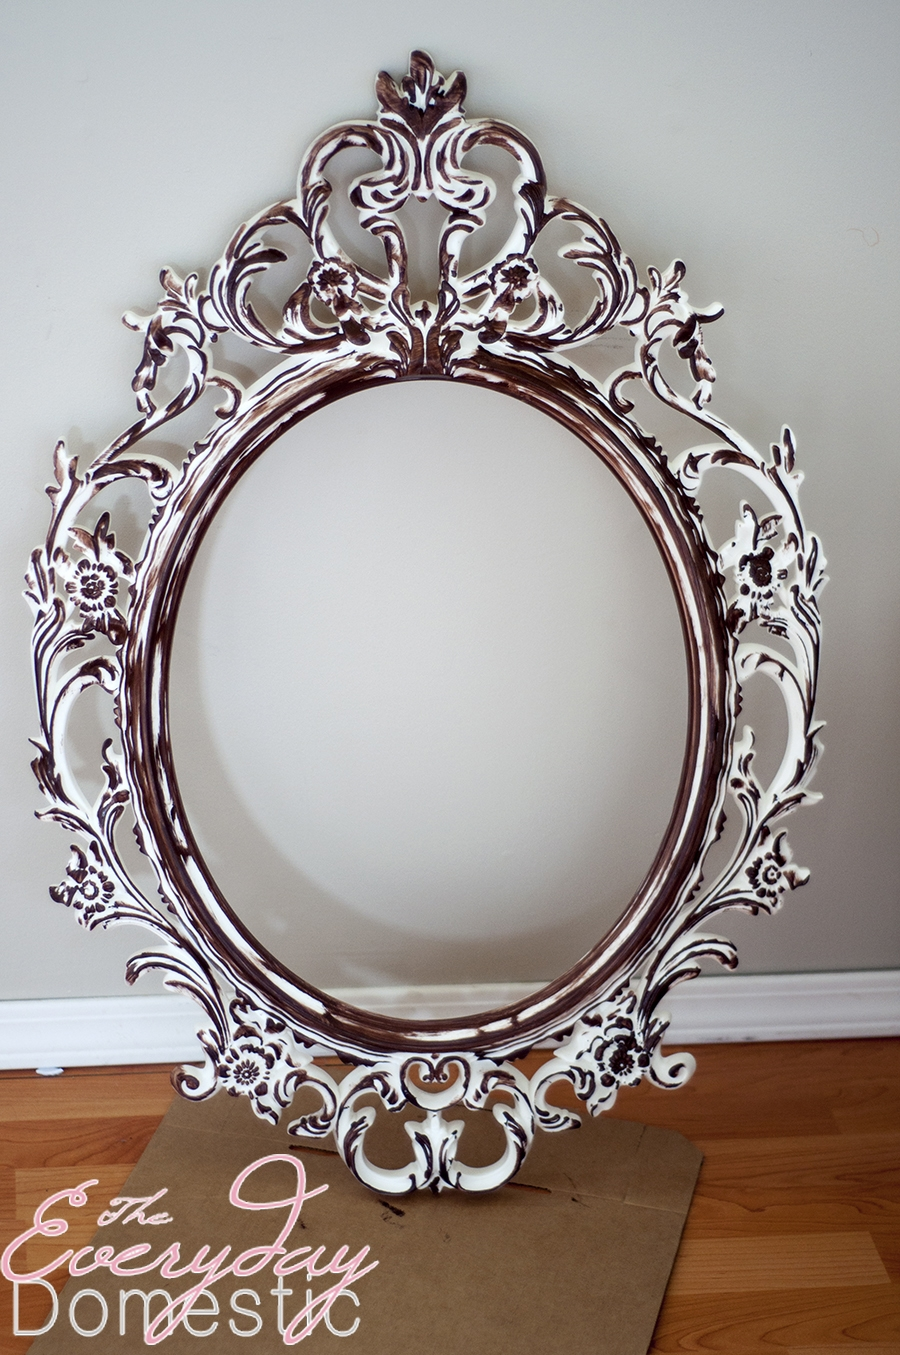 Accessories Fair Picture Of Vintage Chic Ornate Silver Metallic Throughout Small Ornate Mirrors (Image 3 of 15)